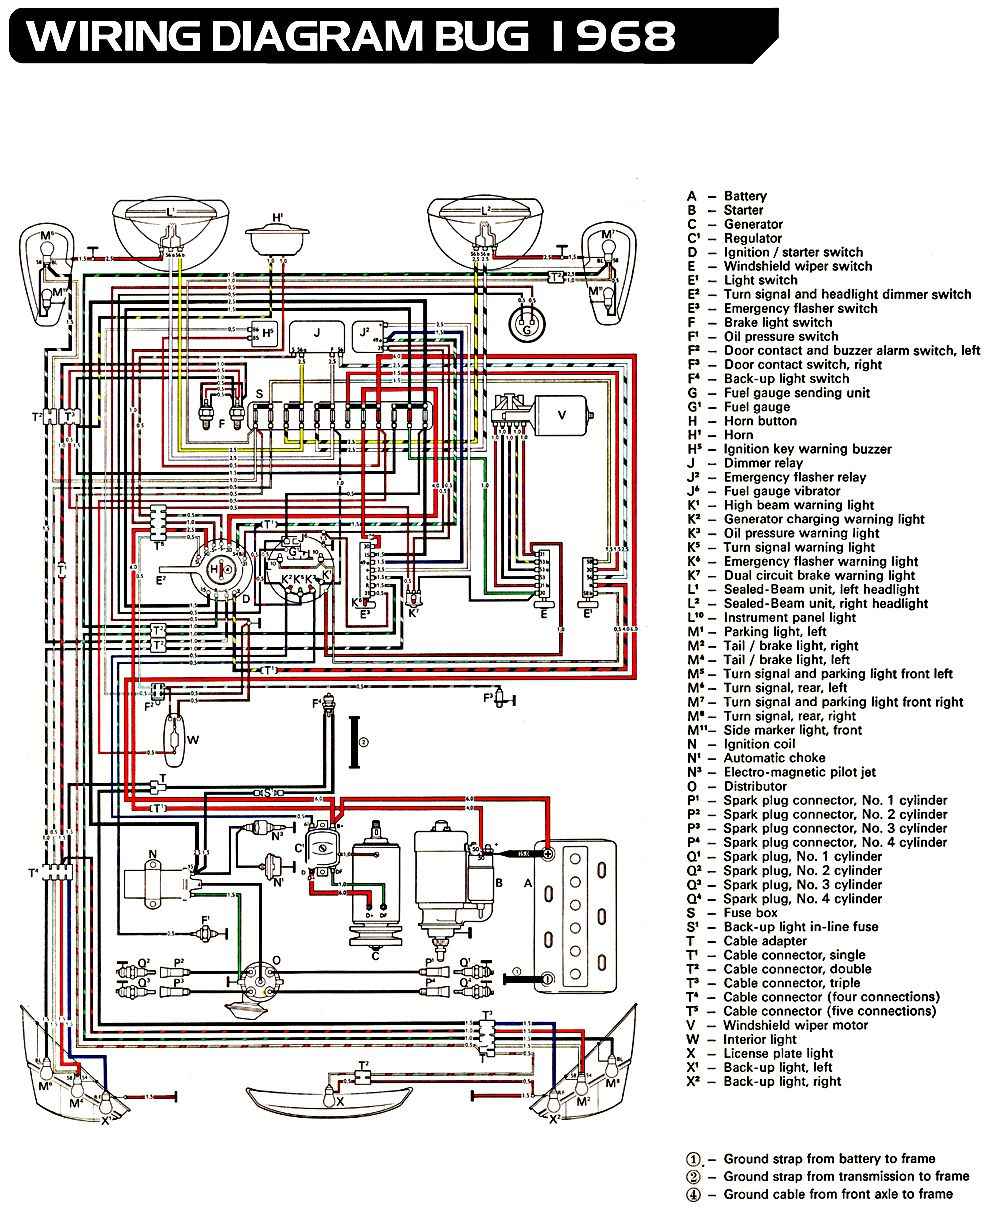 3a1908112d3826270ed5e3be362292bf vw bug ignition wiring diagram 73 vw wiring diagram free vw bug turn signal wiring diagram at eliteediting.co